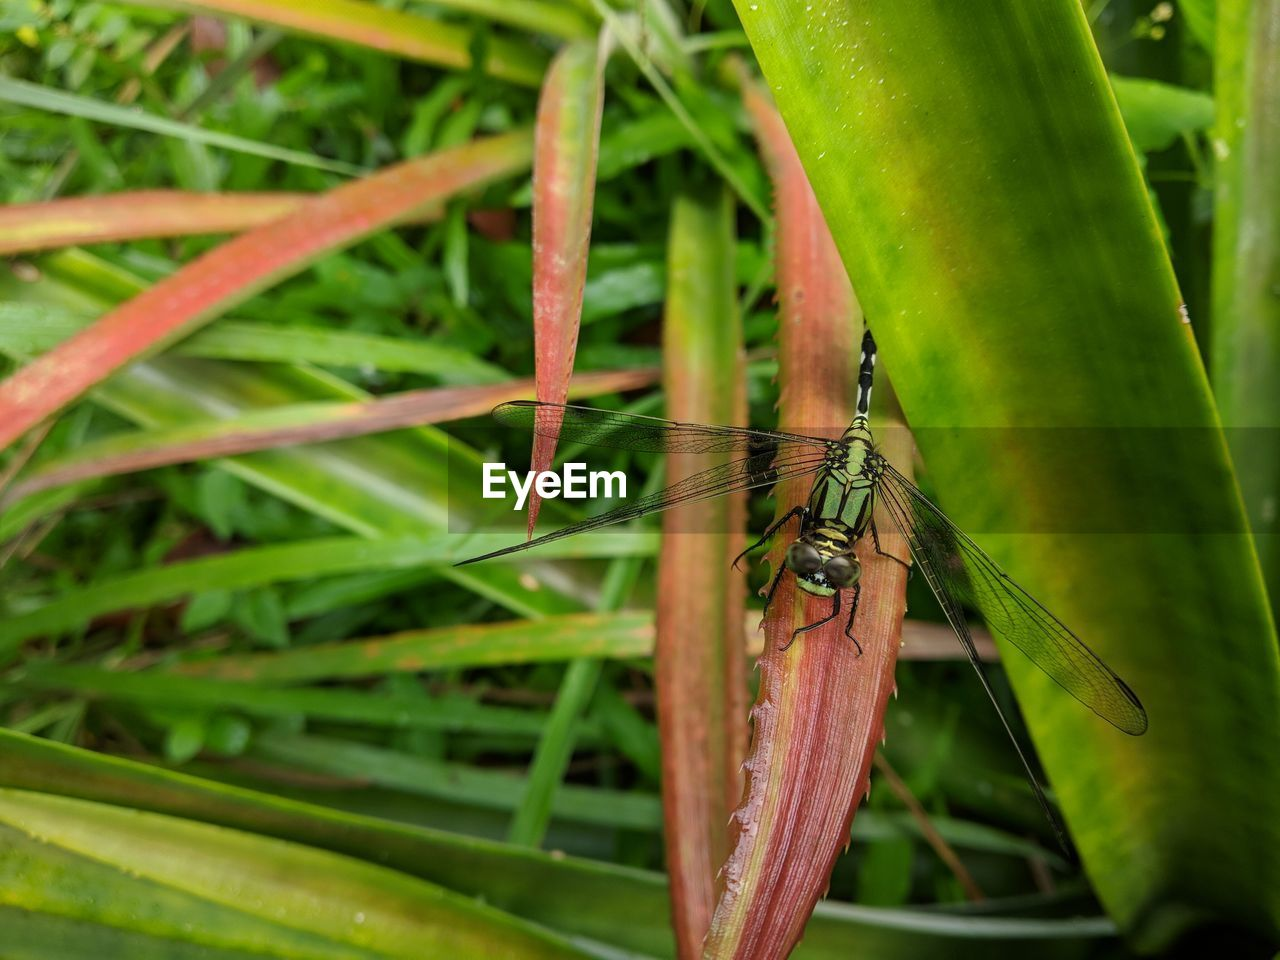 animal wildlife, insect, animals in the wild, invertebrate, animal themes, one animal, animal, green color, plant, close-up, plant part, focus on foreground, leaf, growth, nature, day, no people, animal wing, beauty in nature, outdoors, blade of grass